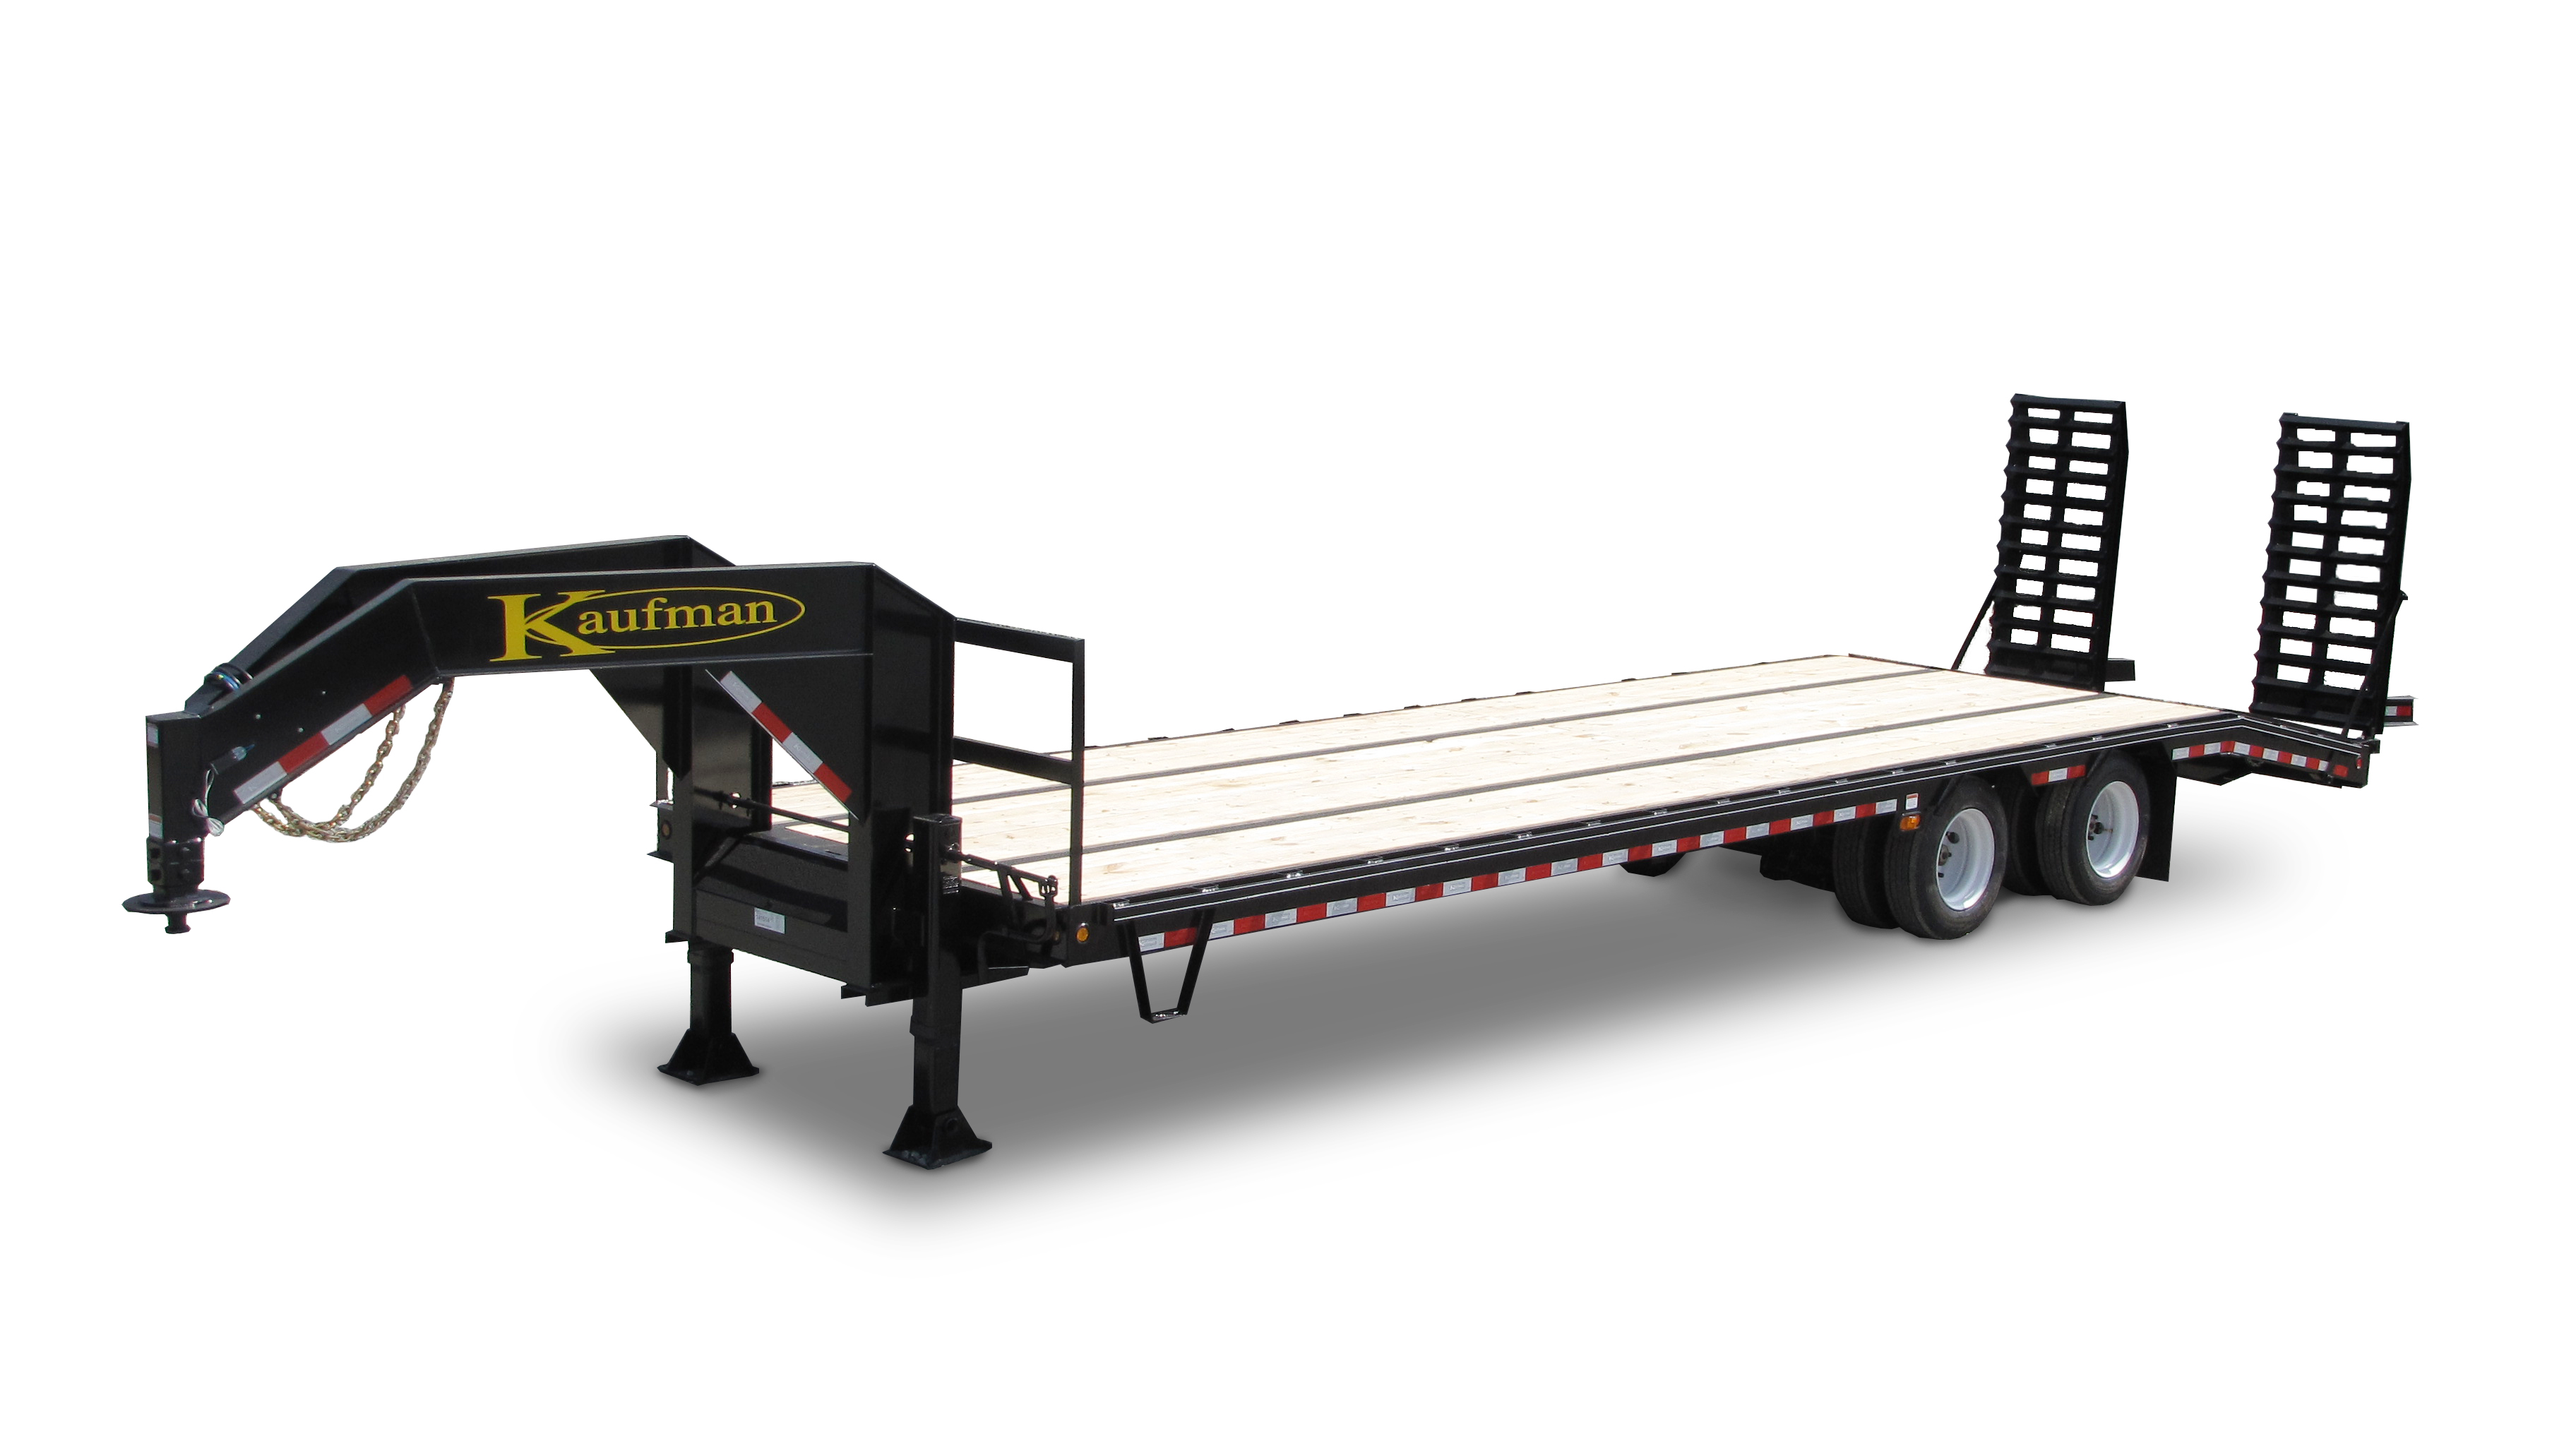 Gooseneck Flatbed Trailer for Sale by Kaufman Trailers